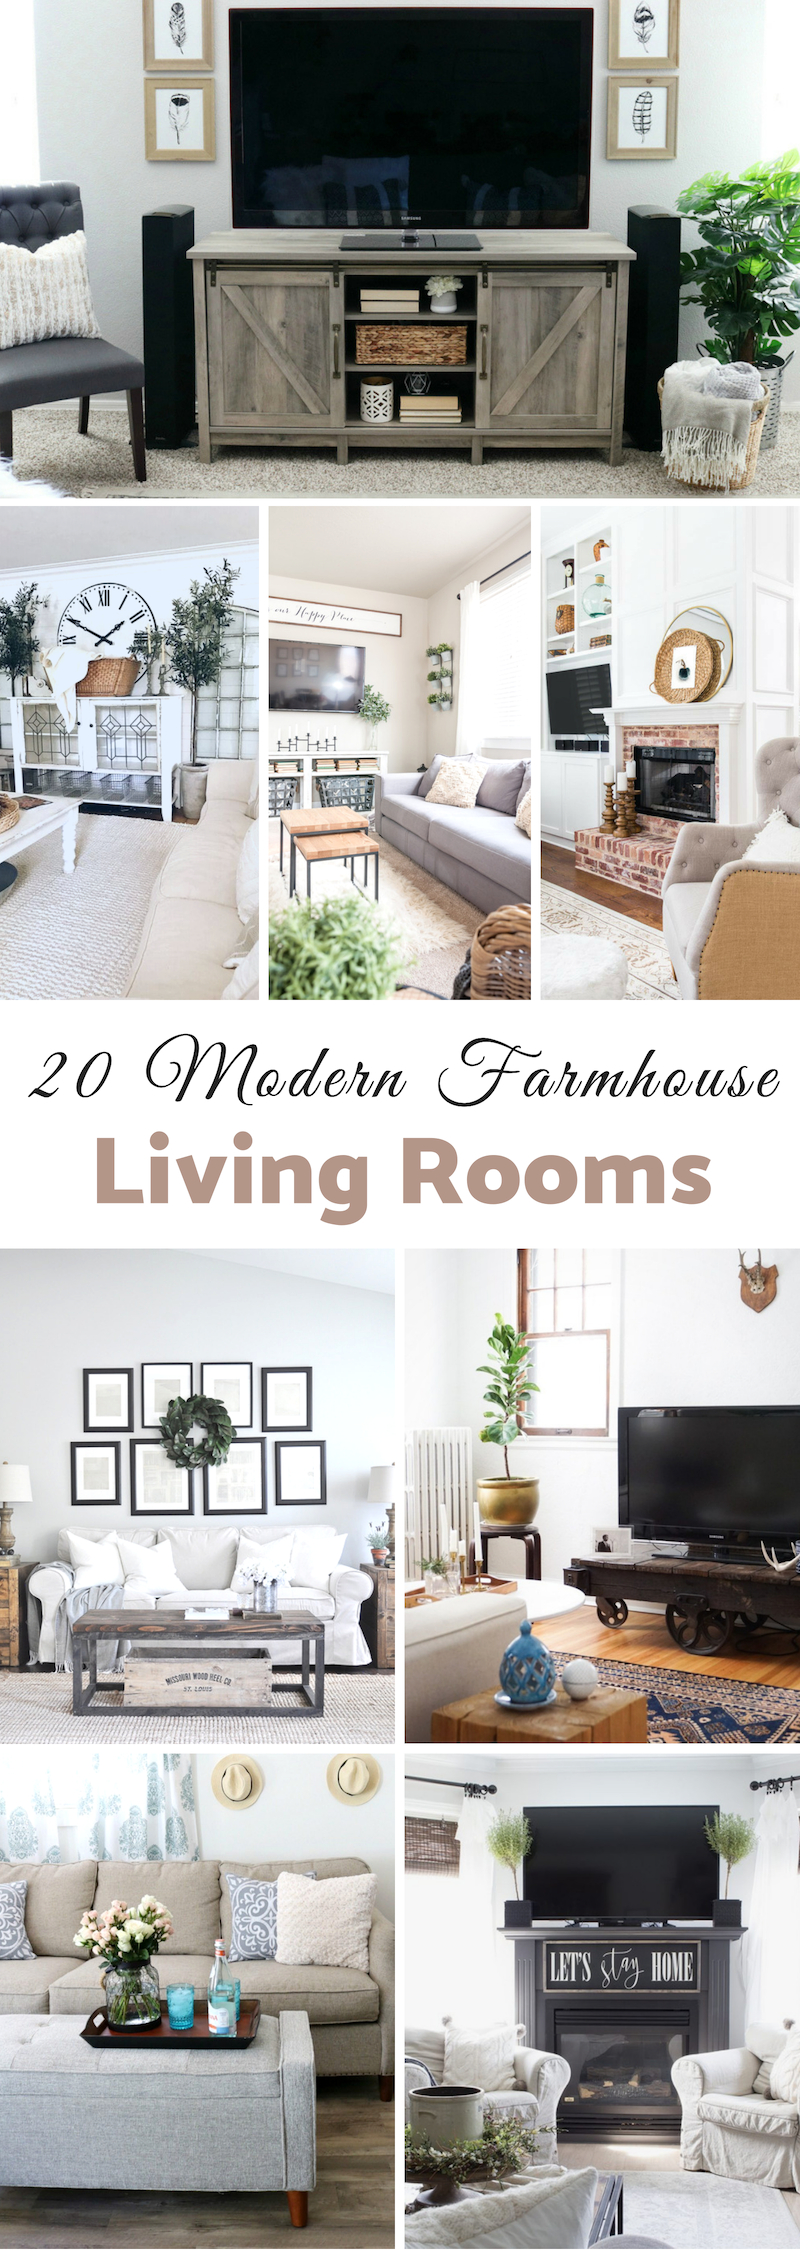 Modern Farmhouse Living Rooms